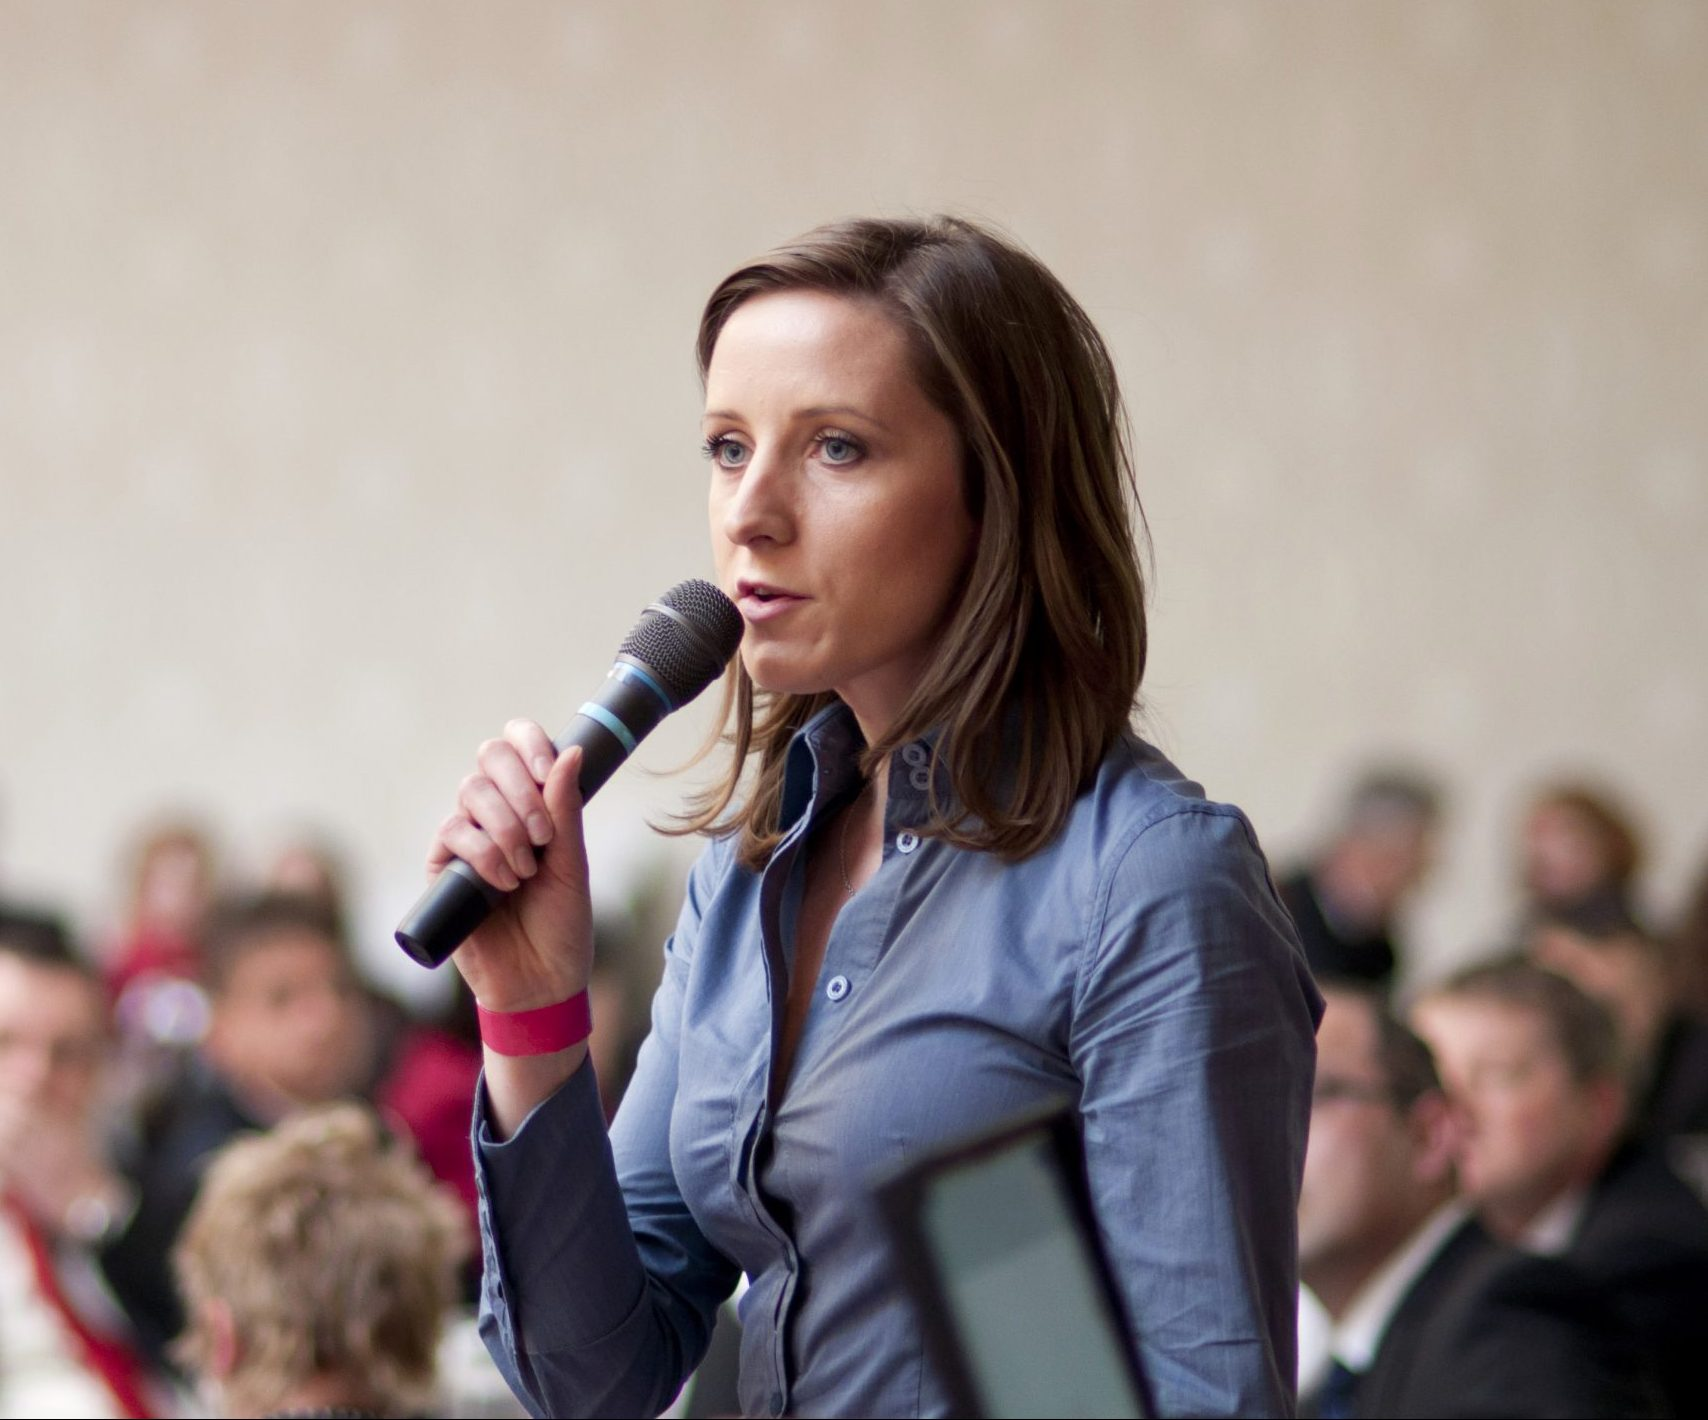 woman speaking into a microhphone.